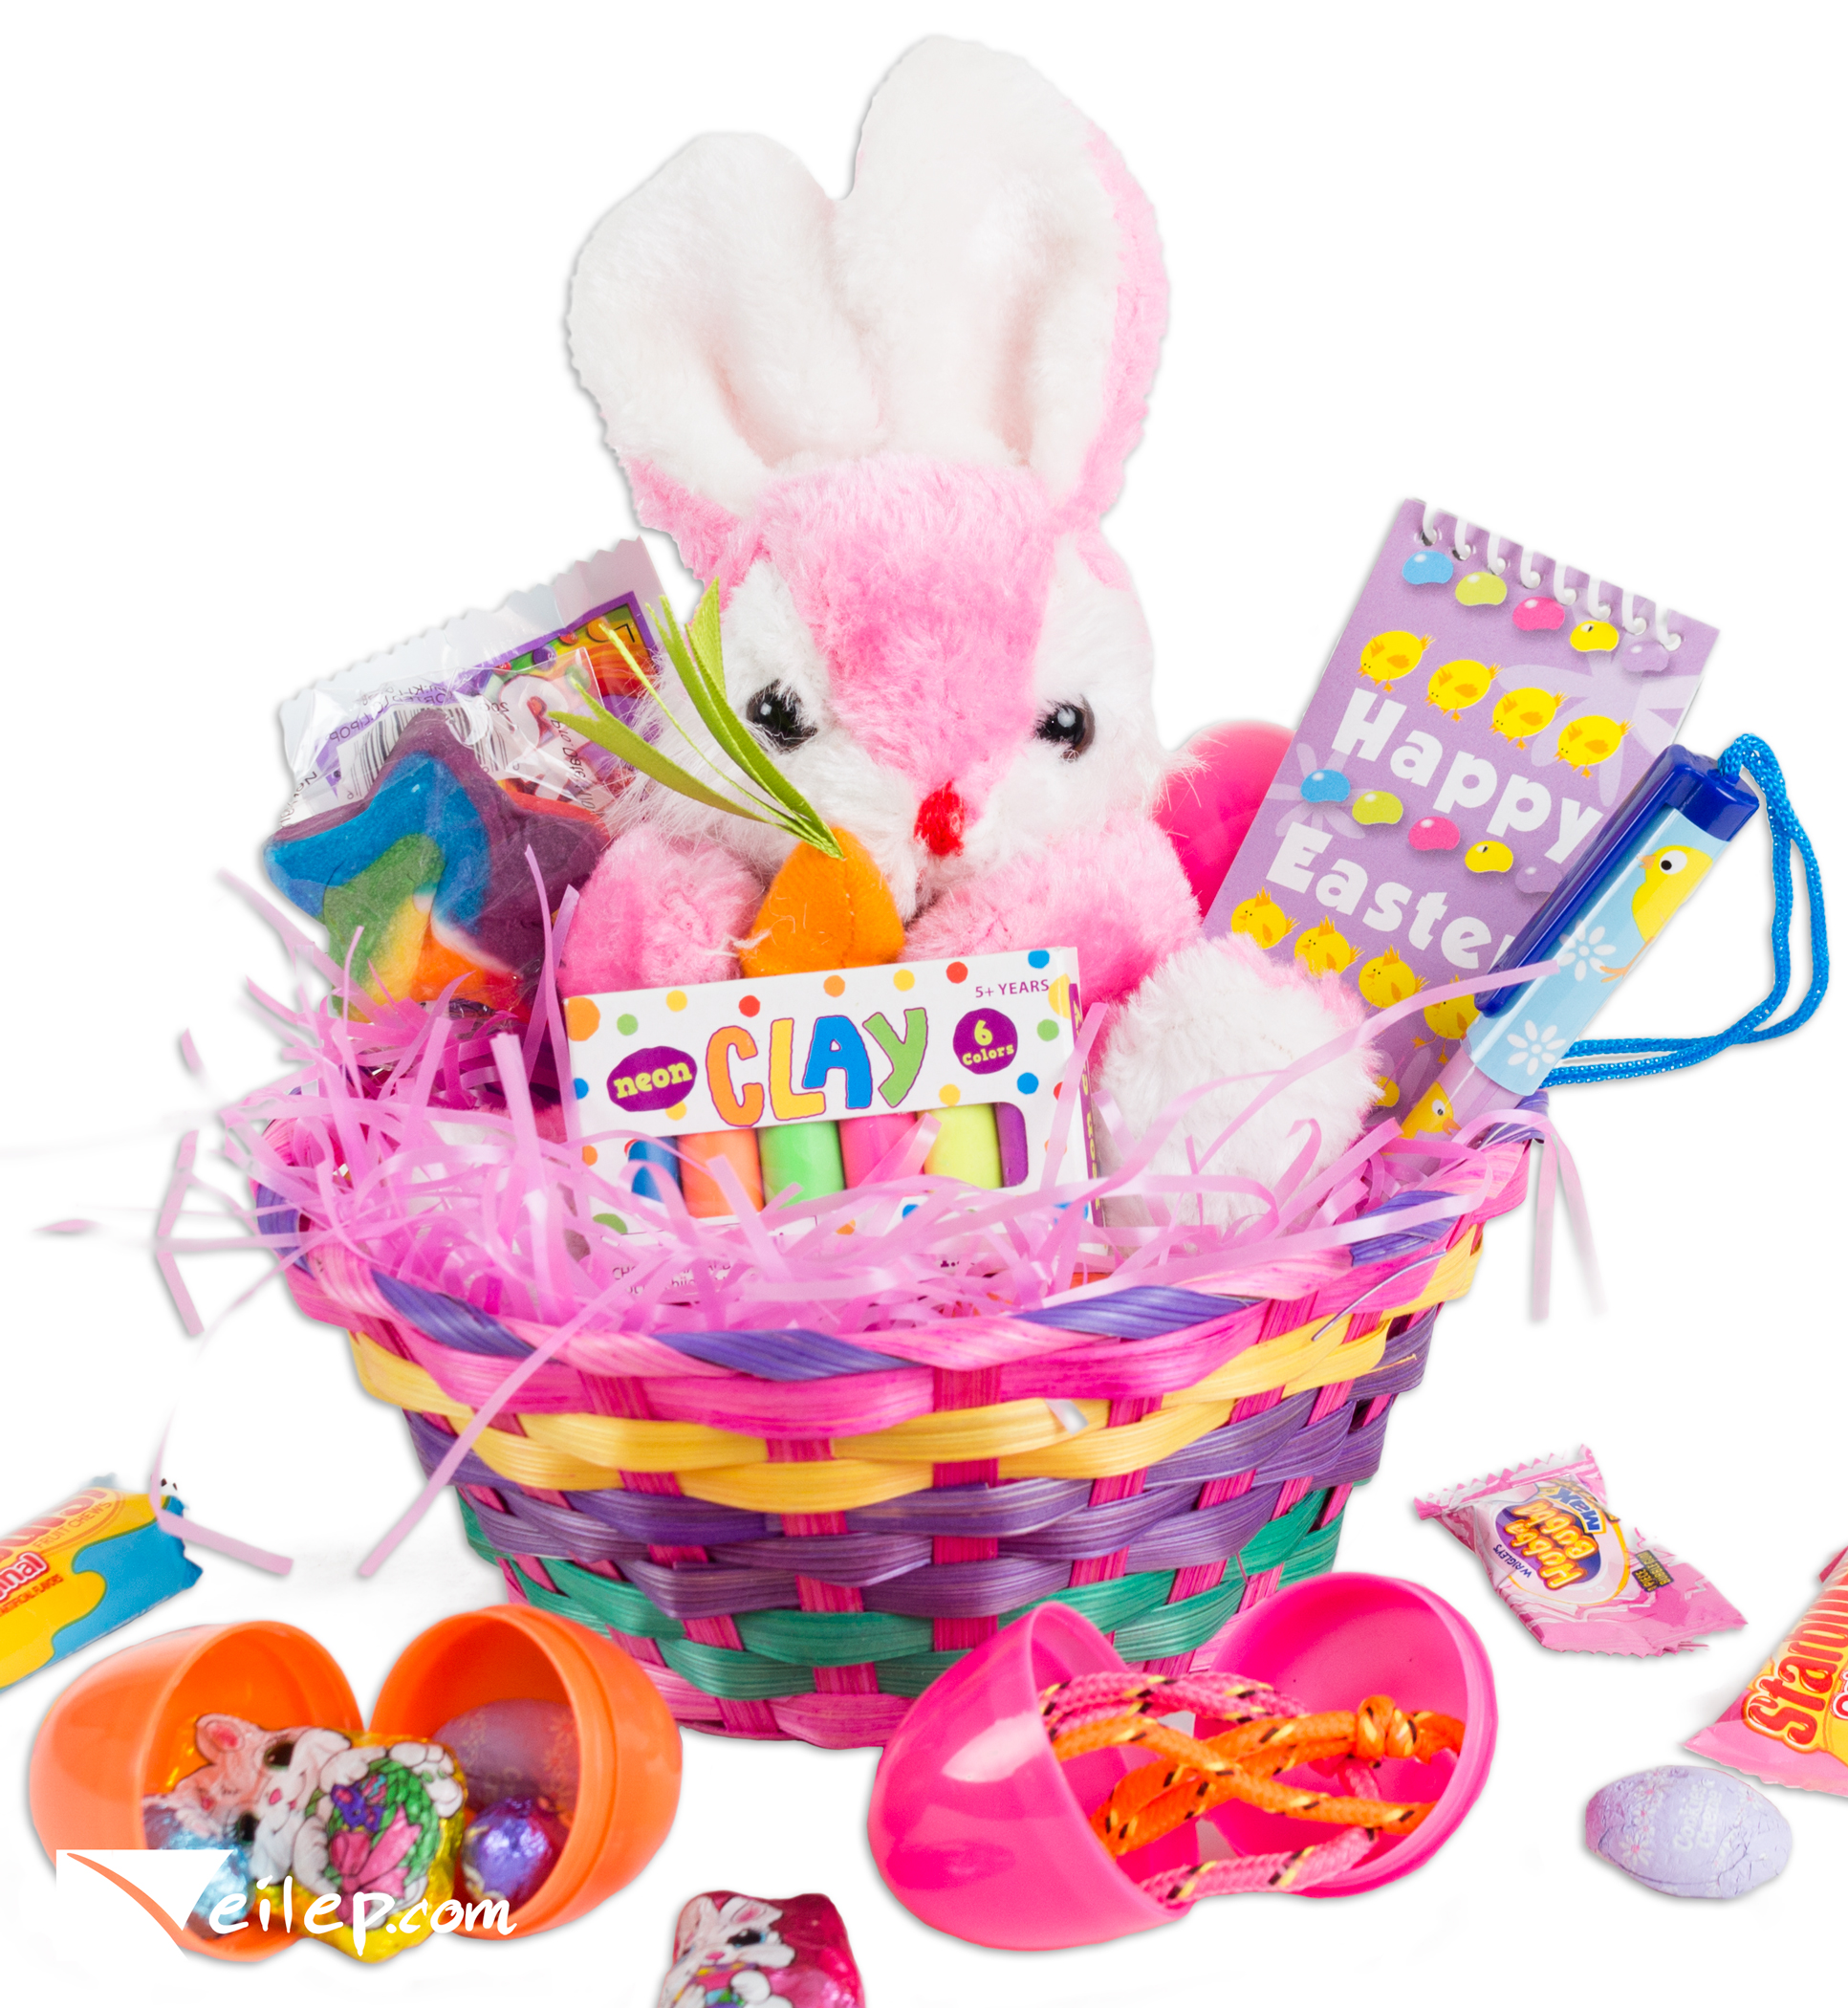 Carrot Easter Bunny Plush Toy 14pc Gift Basket Kit, Treats Fill & More, 3 Colors